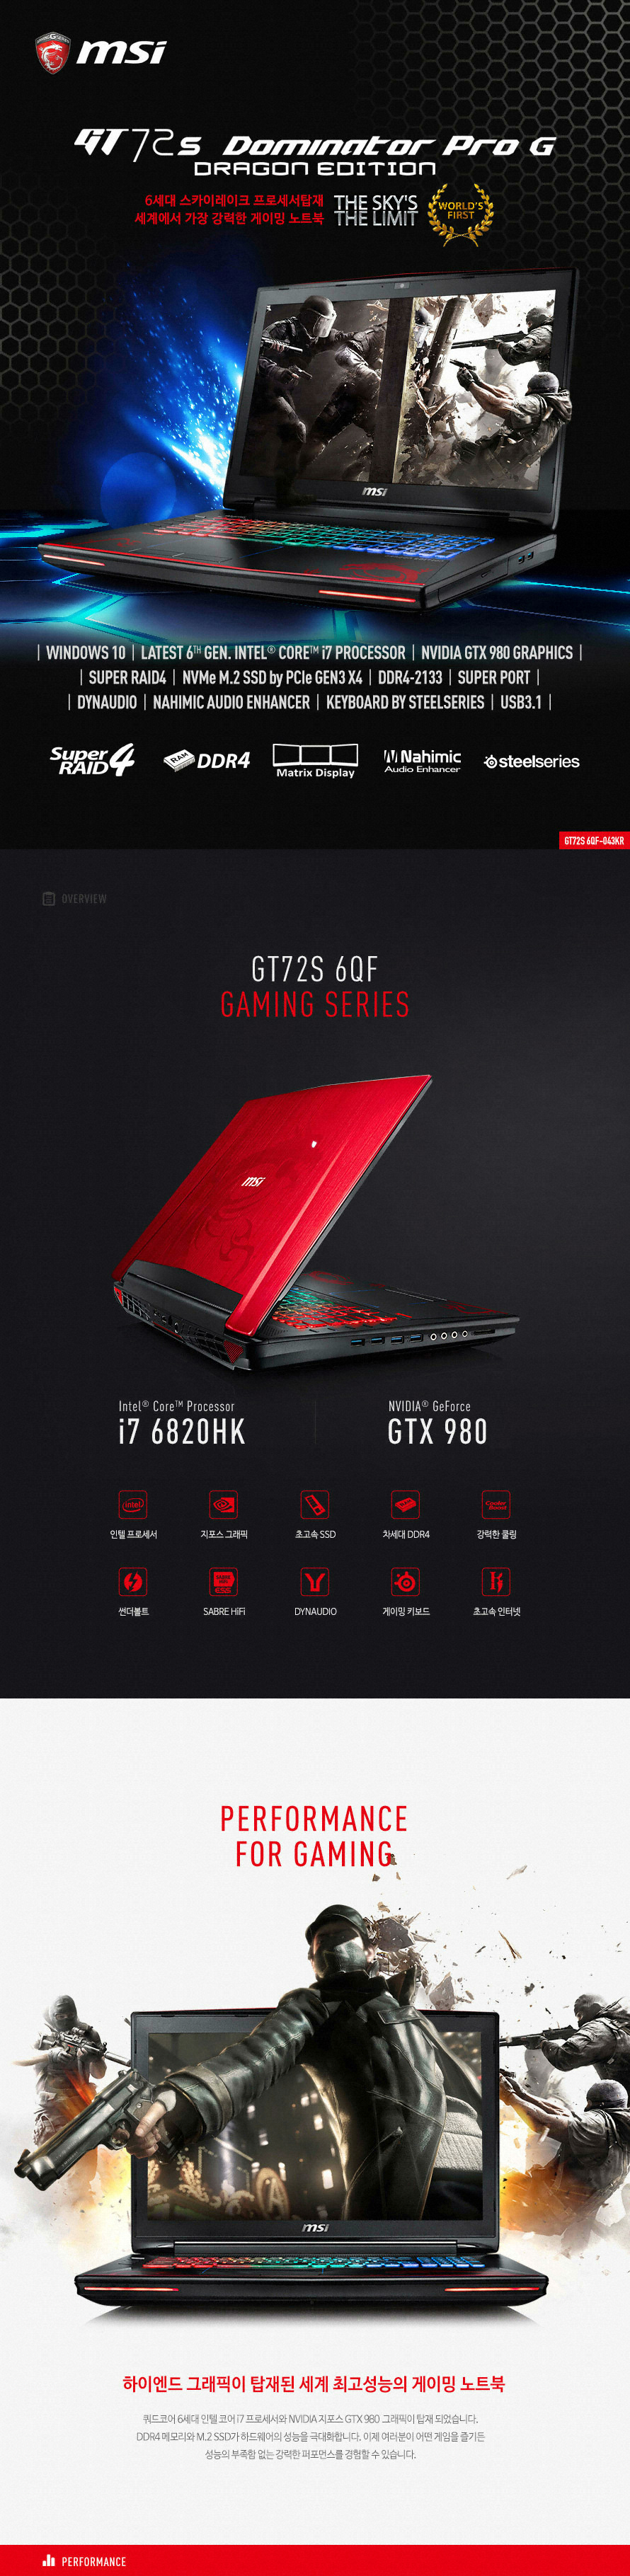 Msi Gt72s 6qf Dominator Pro G Dragon Gaming Laptop Edition